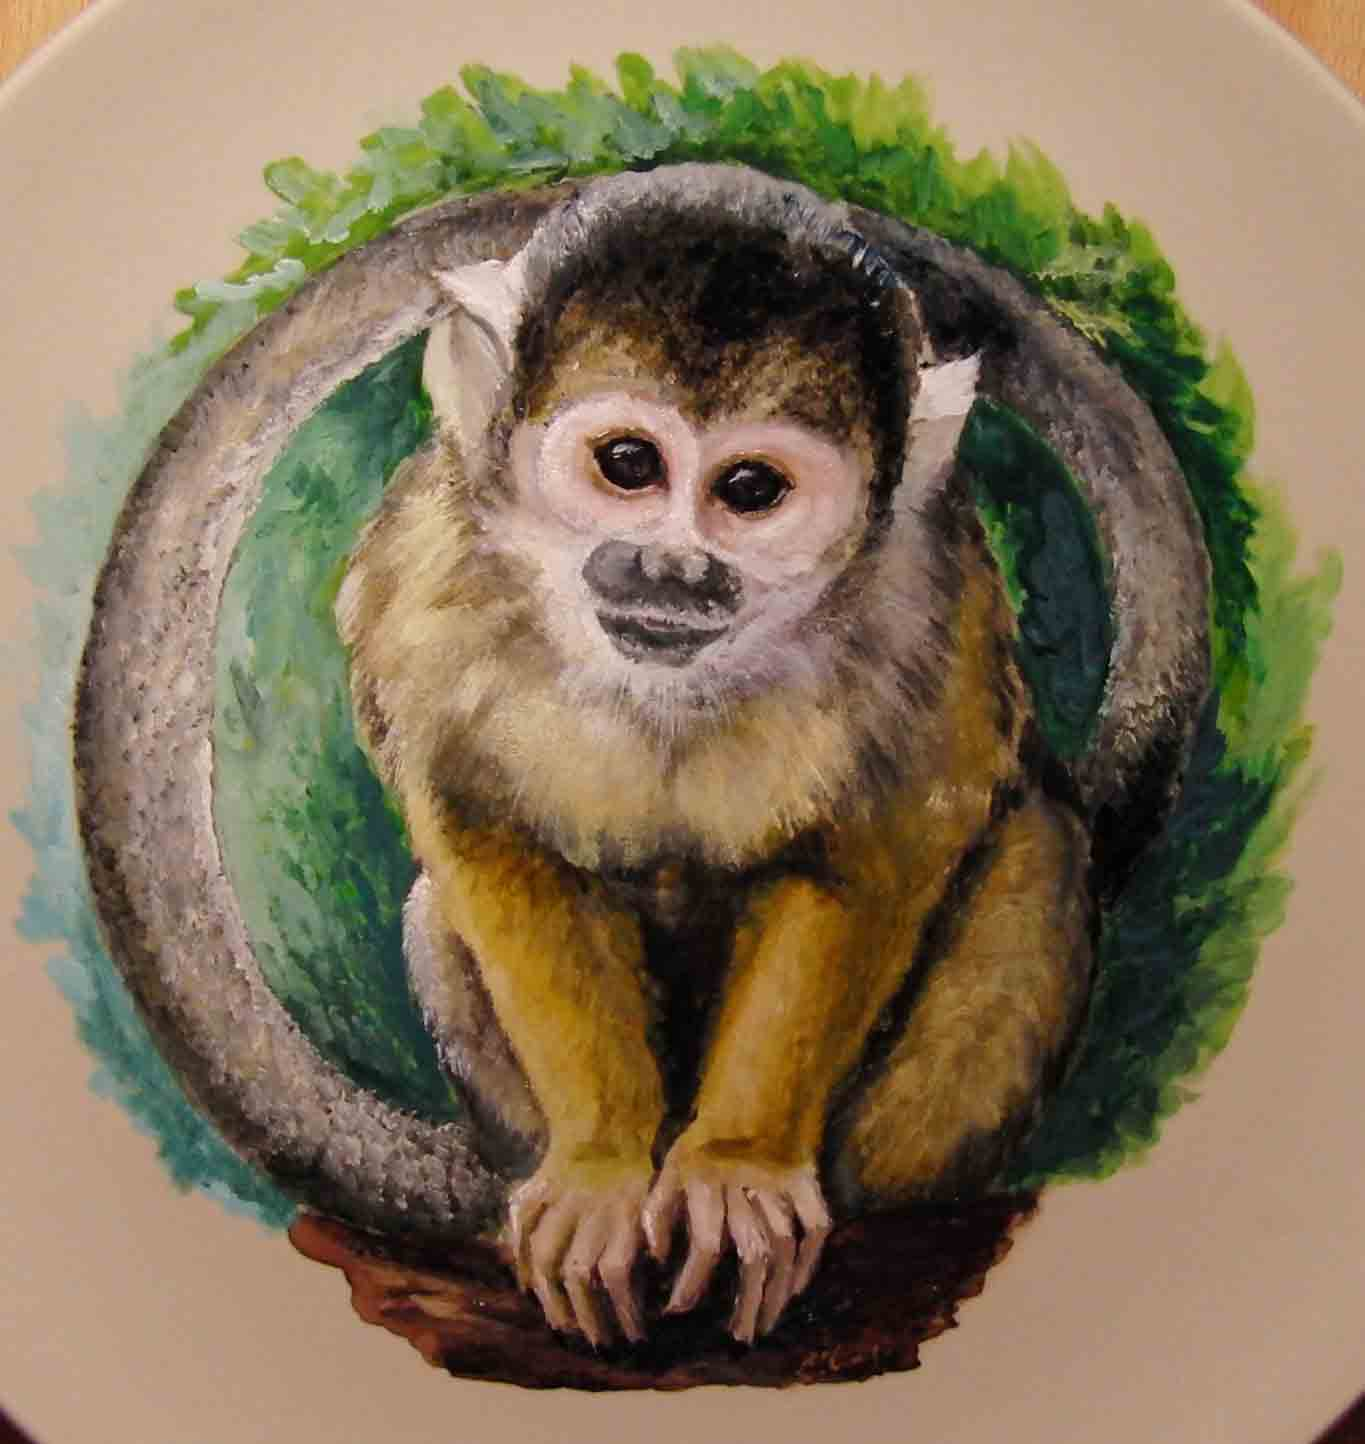 Squirrel monkey on plate